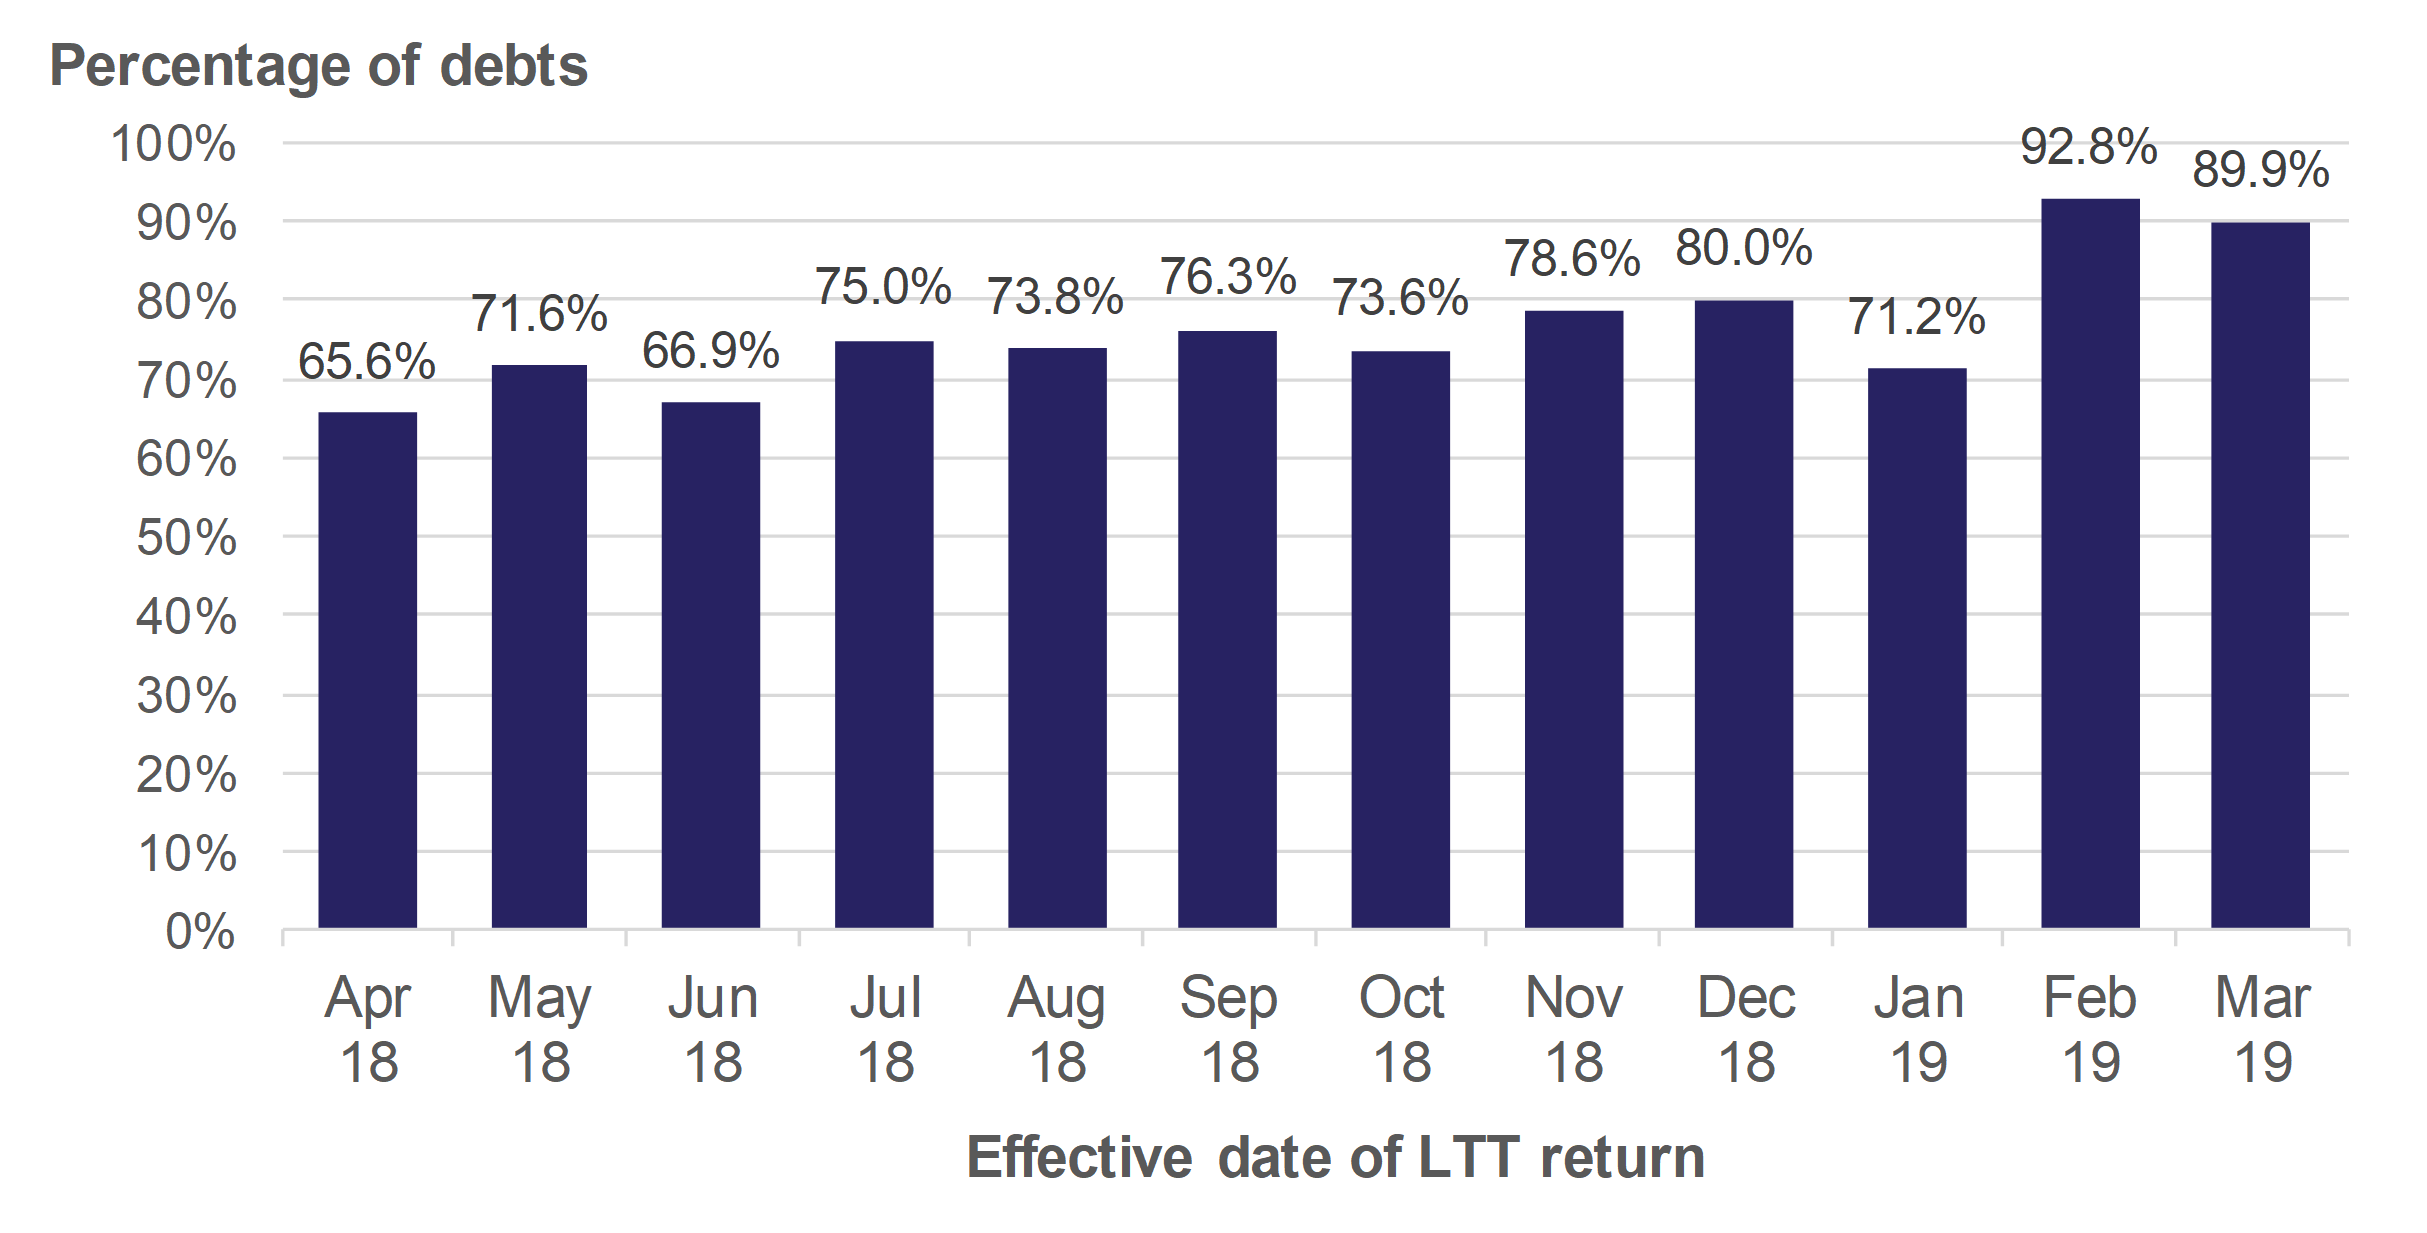 Figure 10.3 shows the monthly trend in Land Transaction Tax debts collected within 30 days, for transactions effective in April 2018 to March 2019.